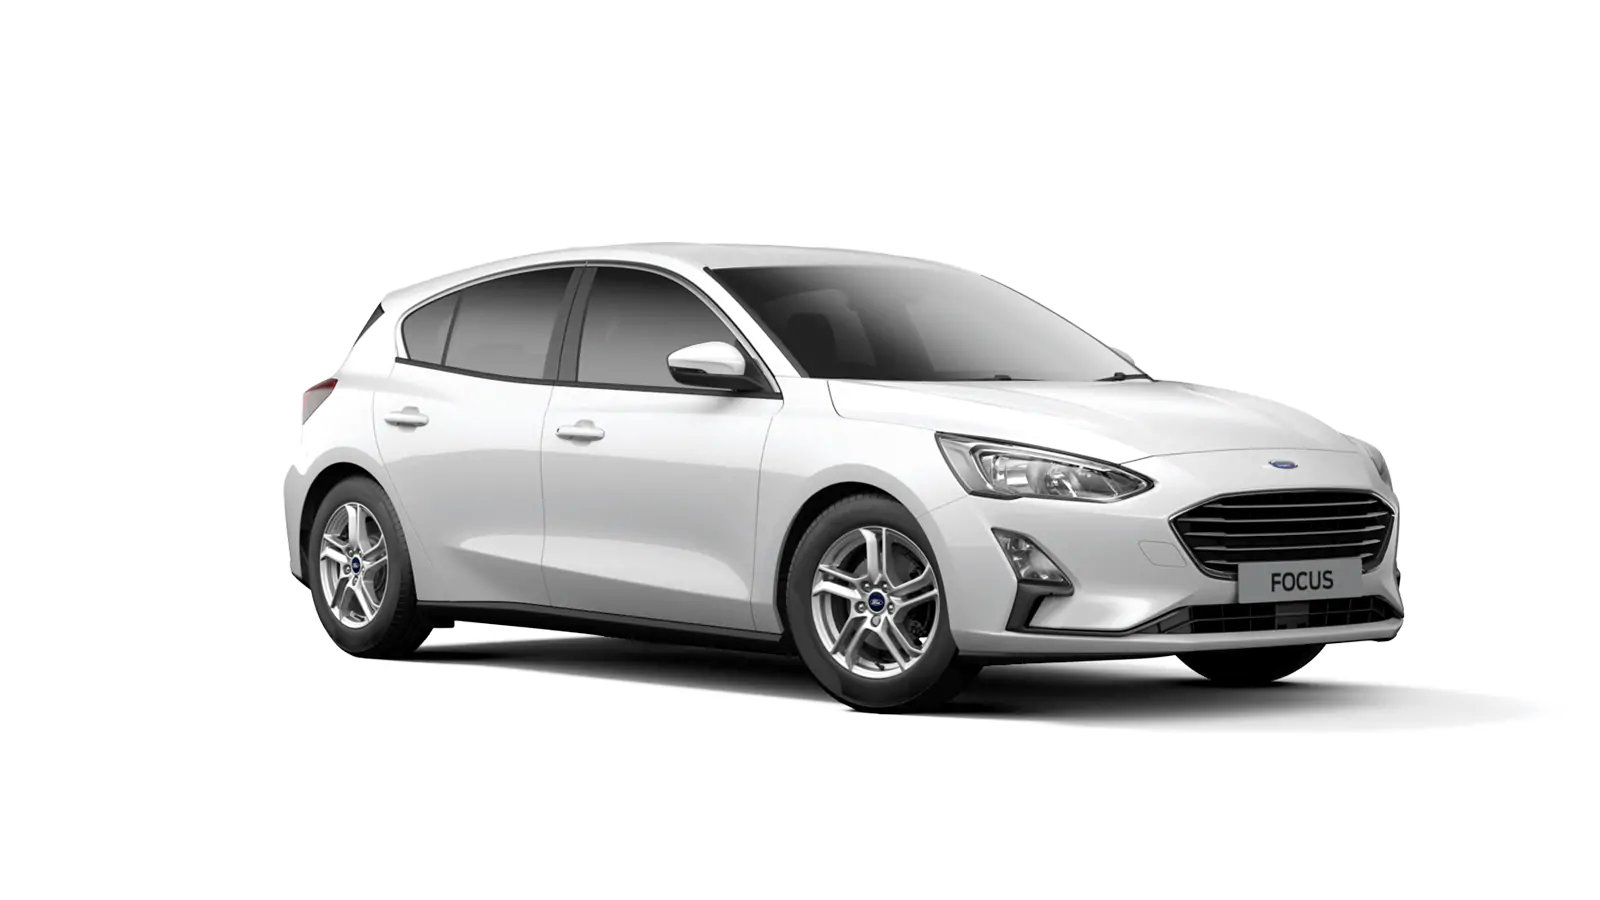 191 Ford Focus Zetec 1.5TDCI, Boland Motors